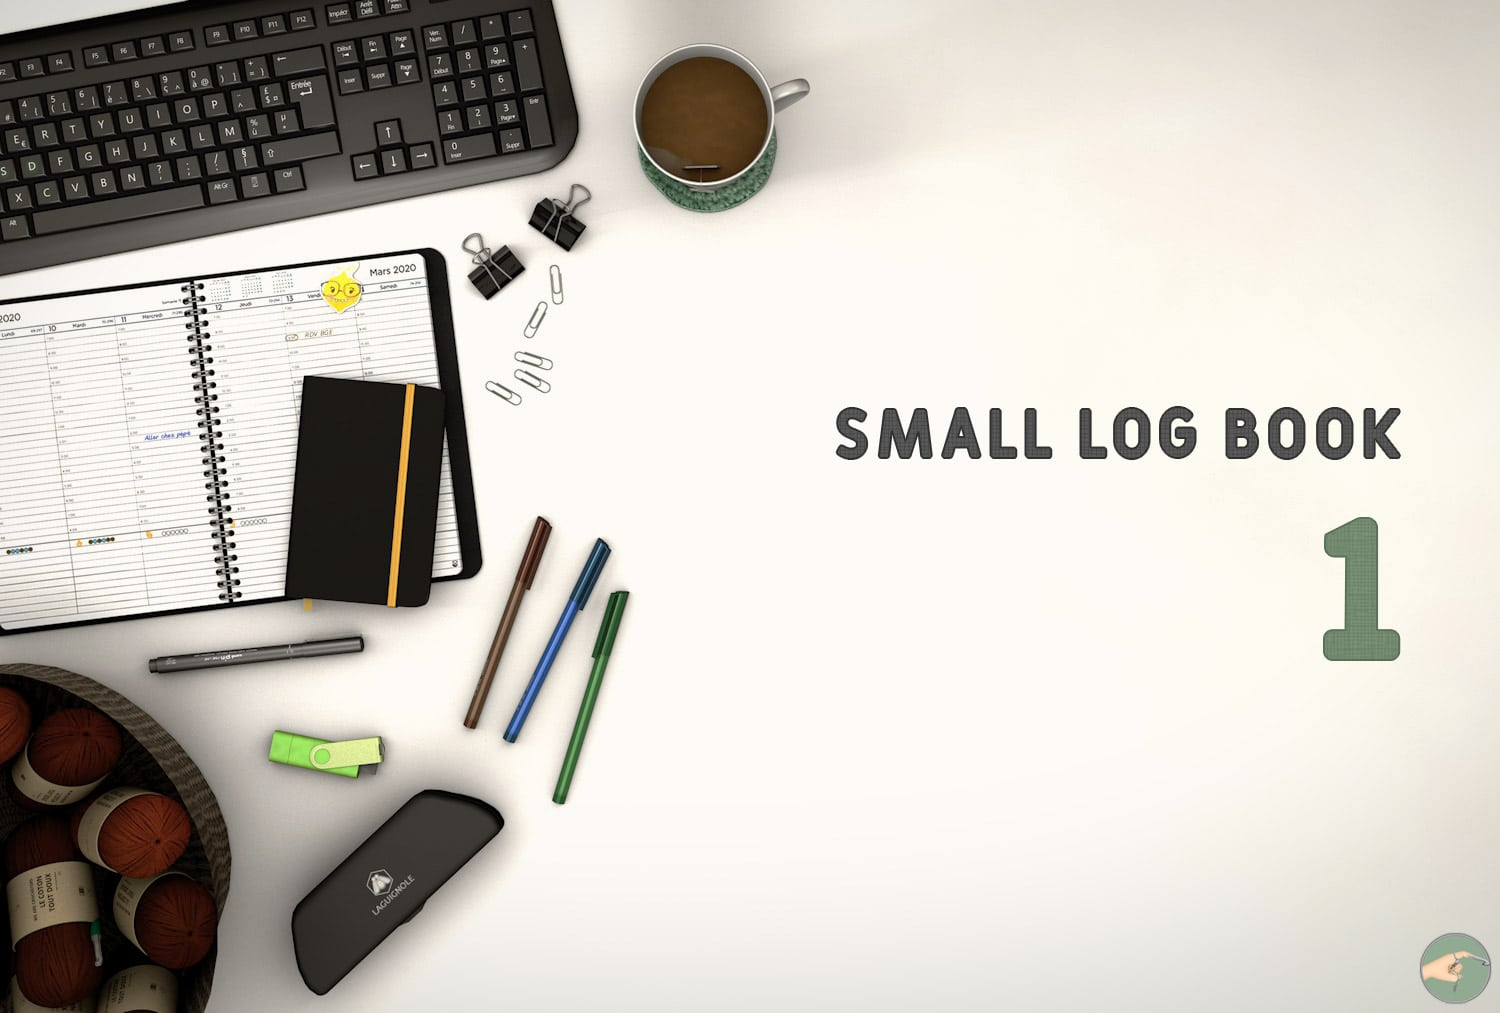 Small Log Book 1 – January 2020